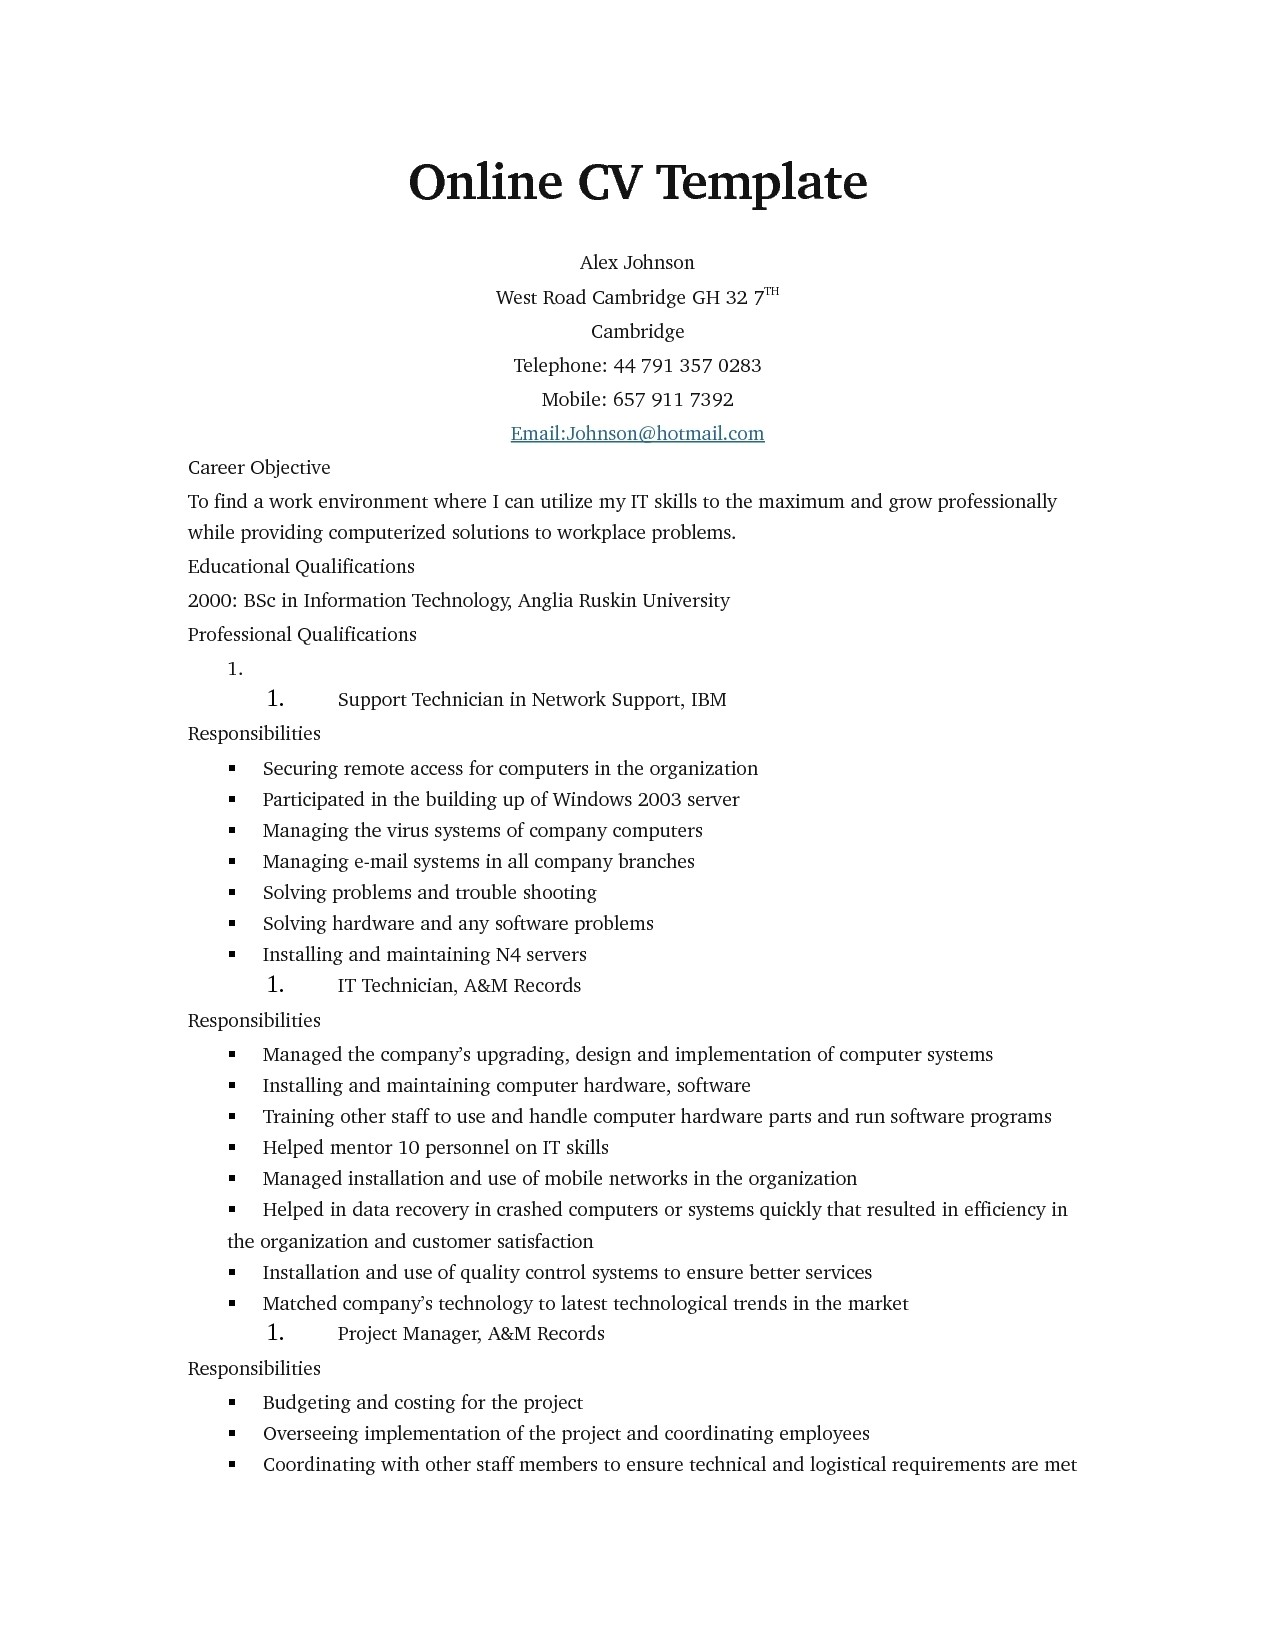 Free Resume Templates to Fill In and Print Online Resume Templates Health Symptoms and Cure Com